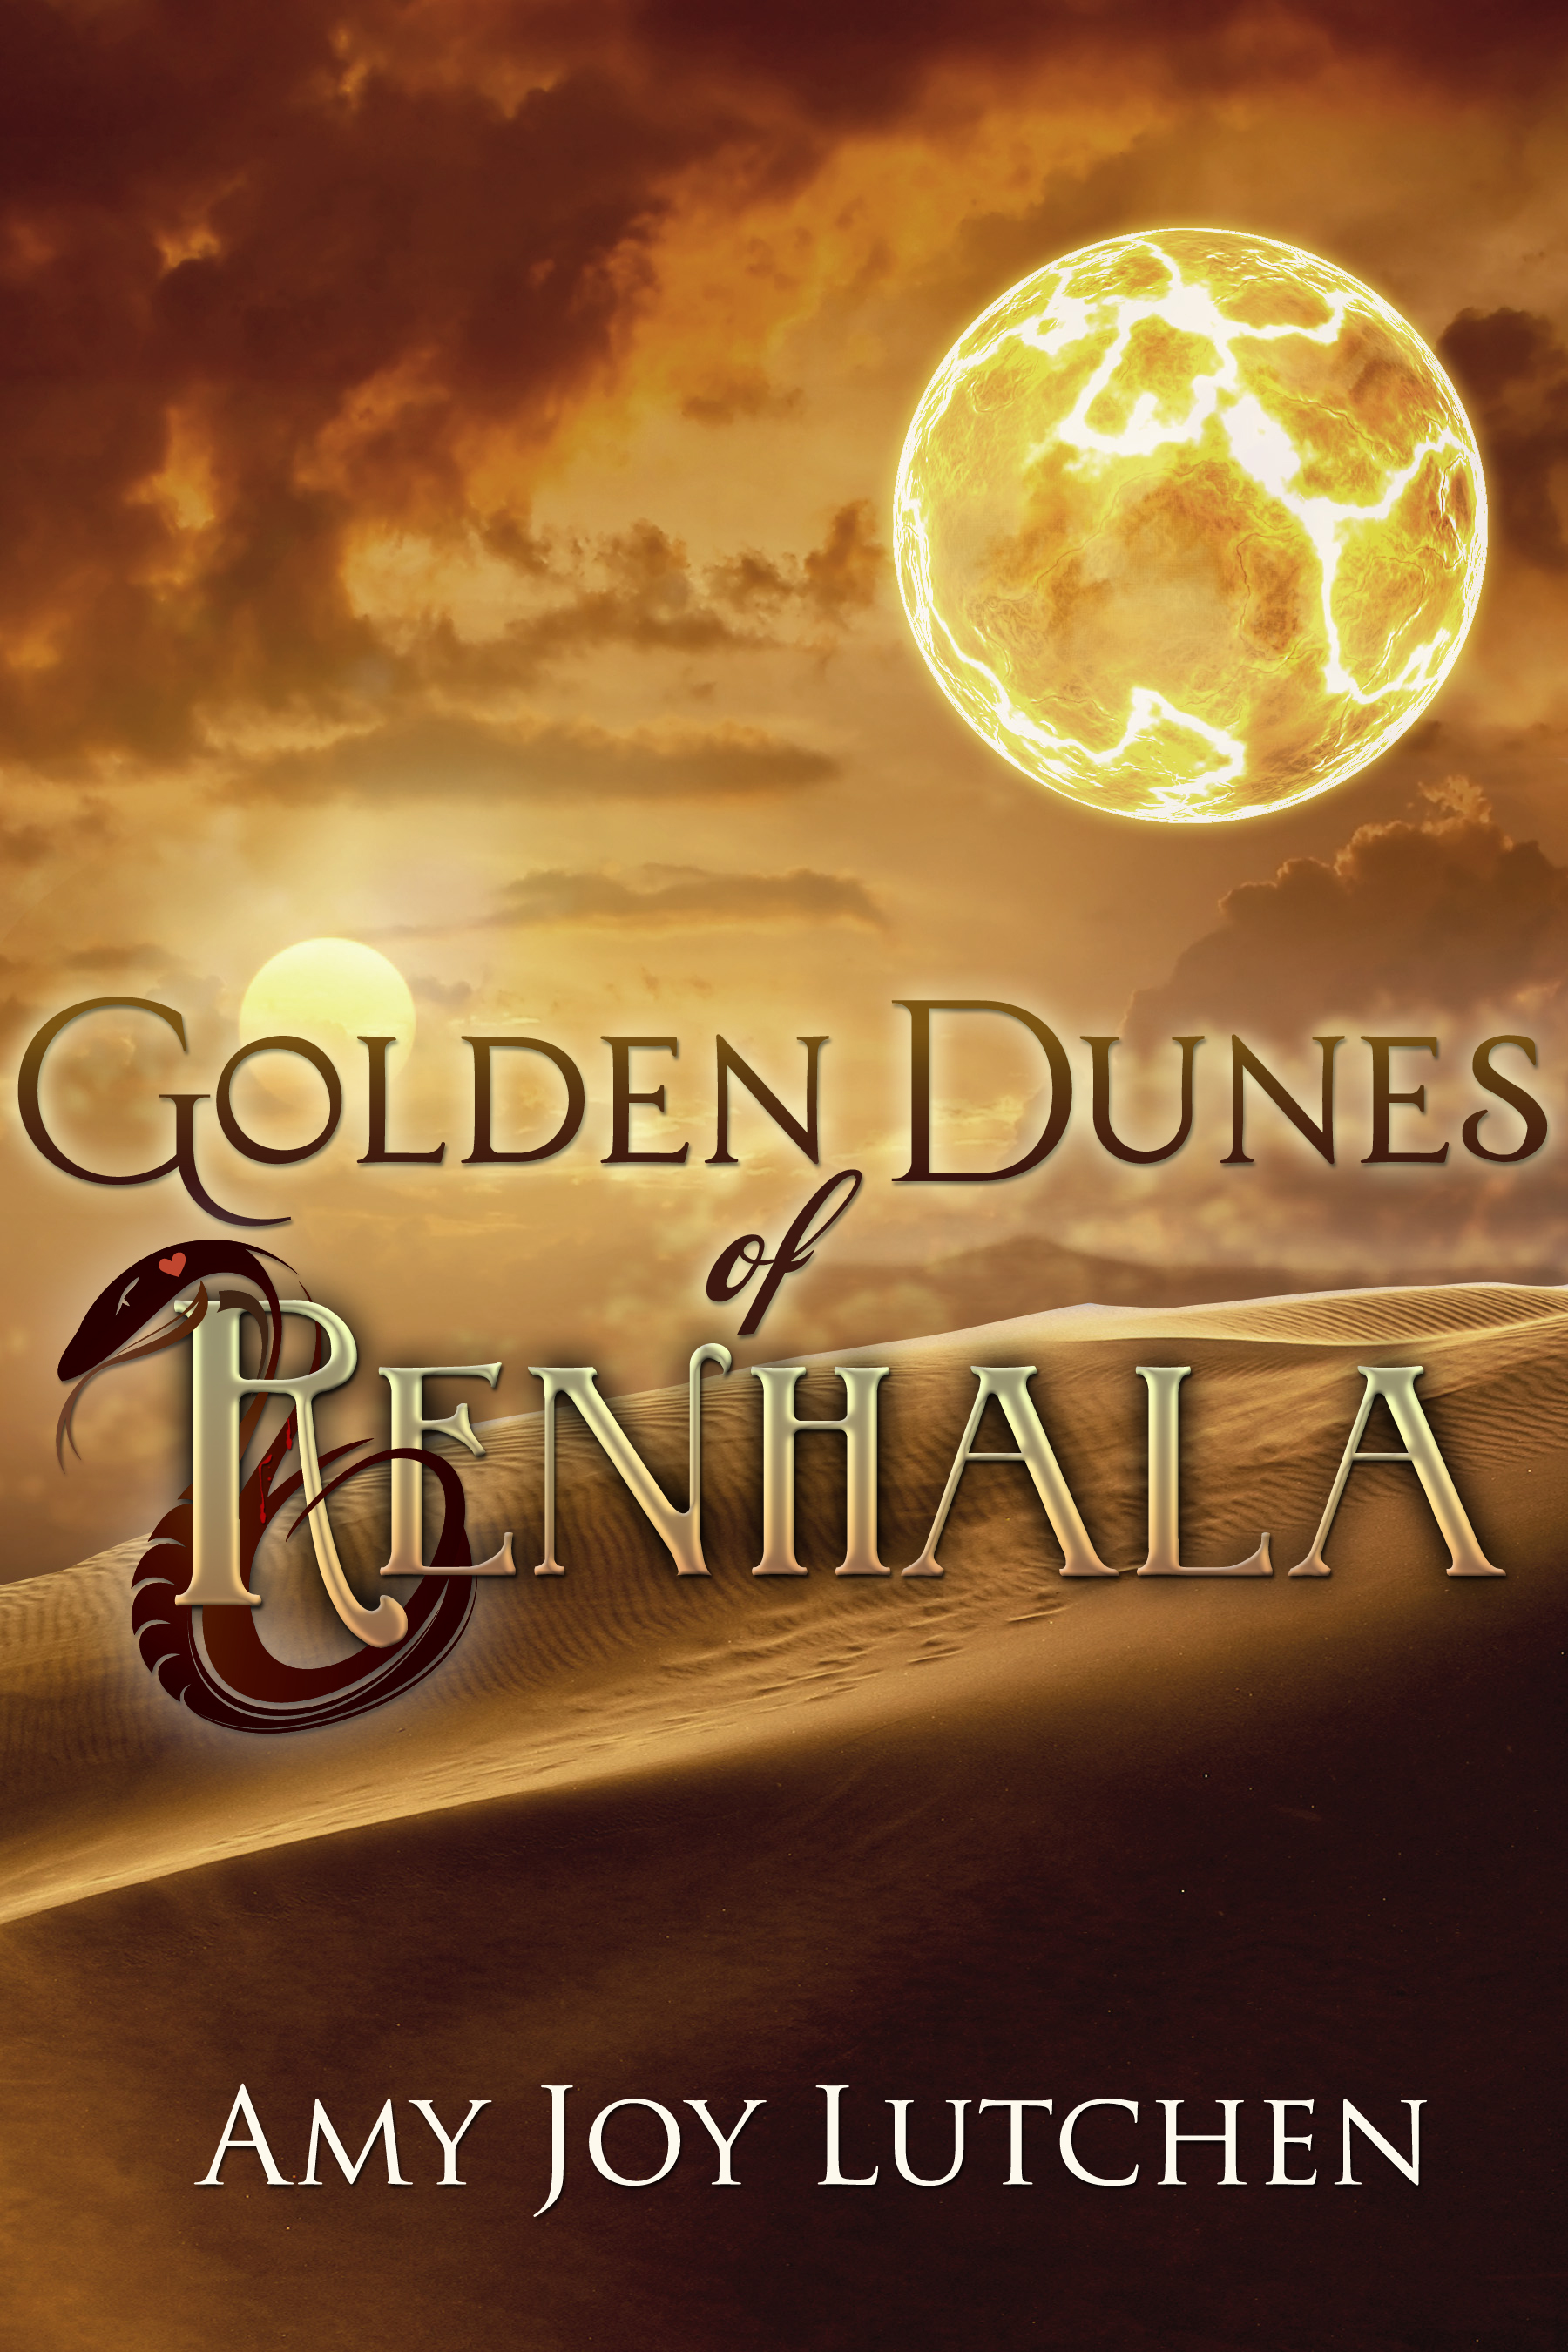 Golden Dunes cover art